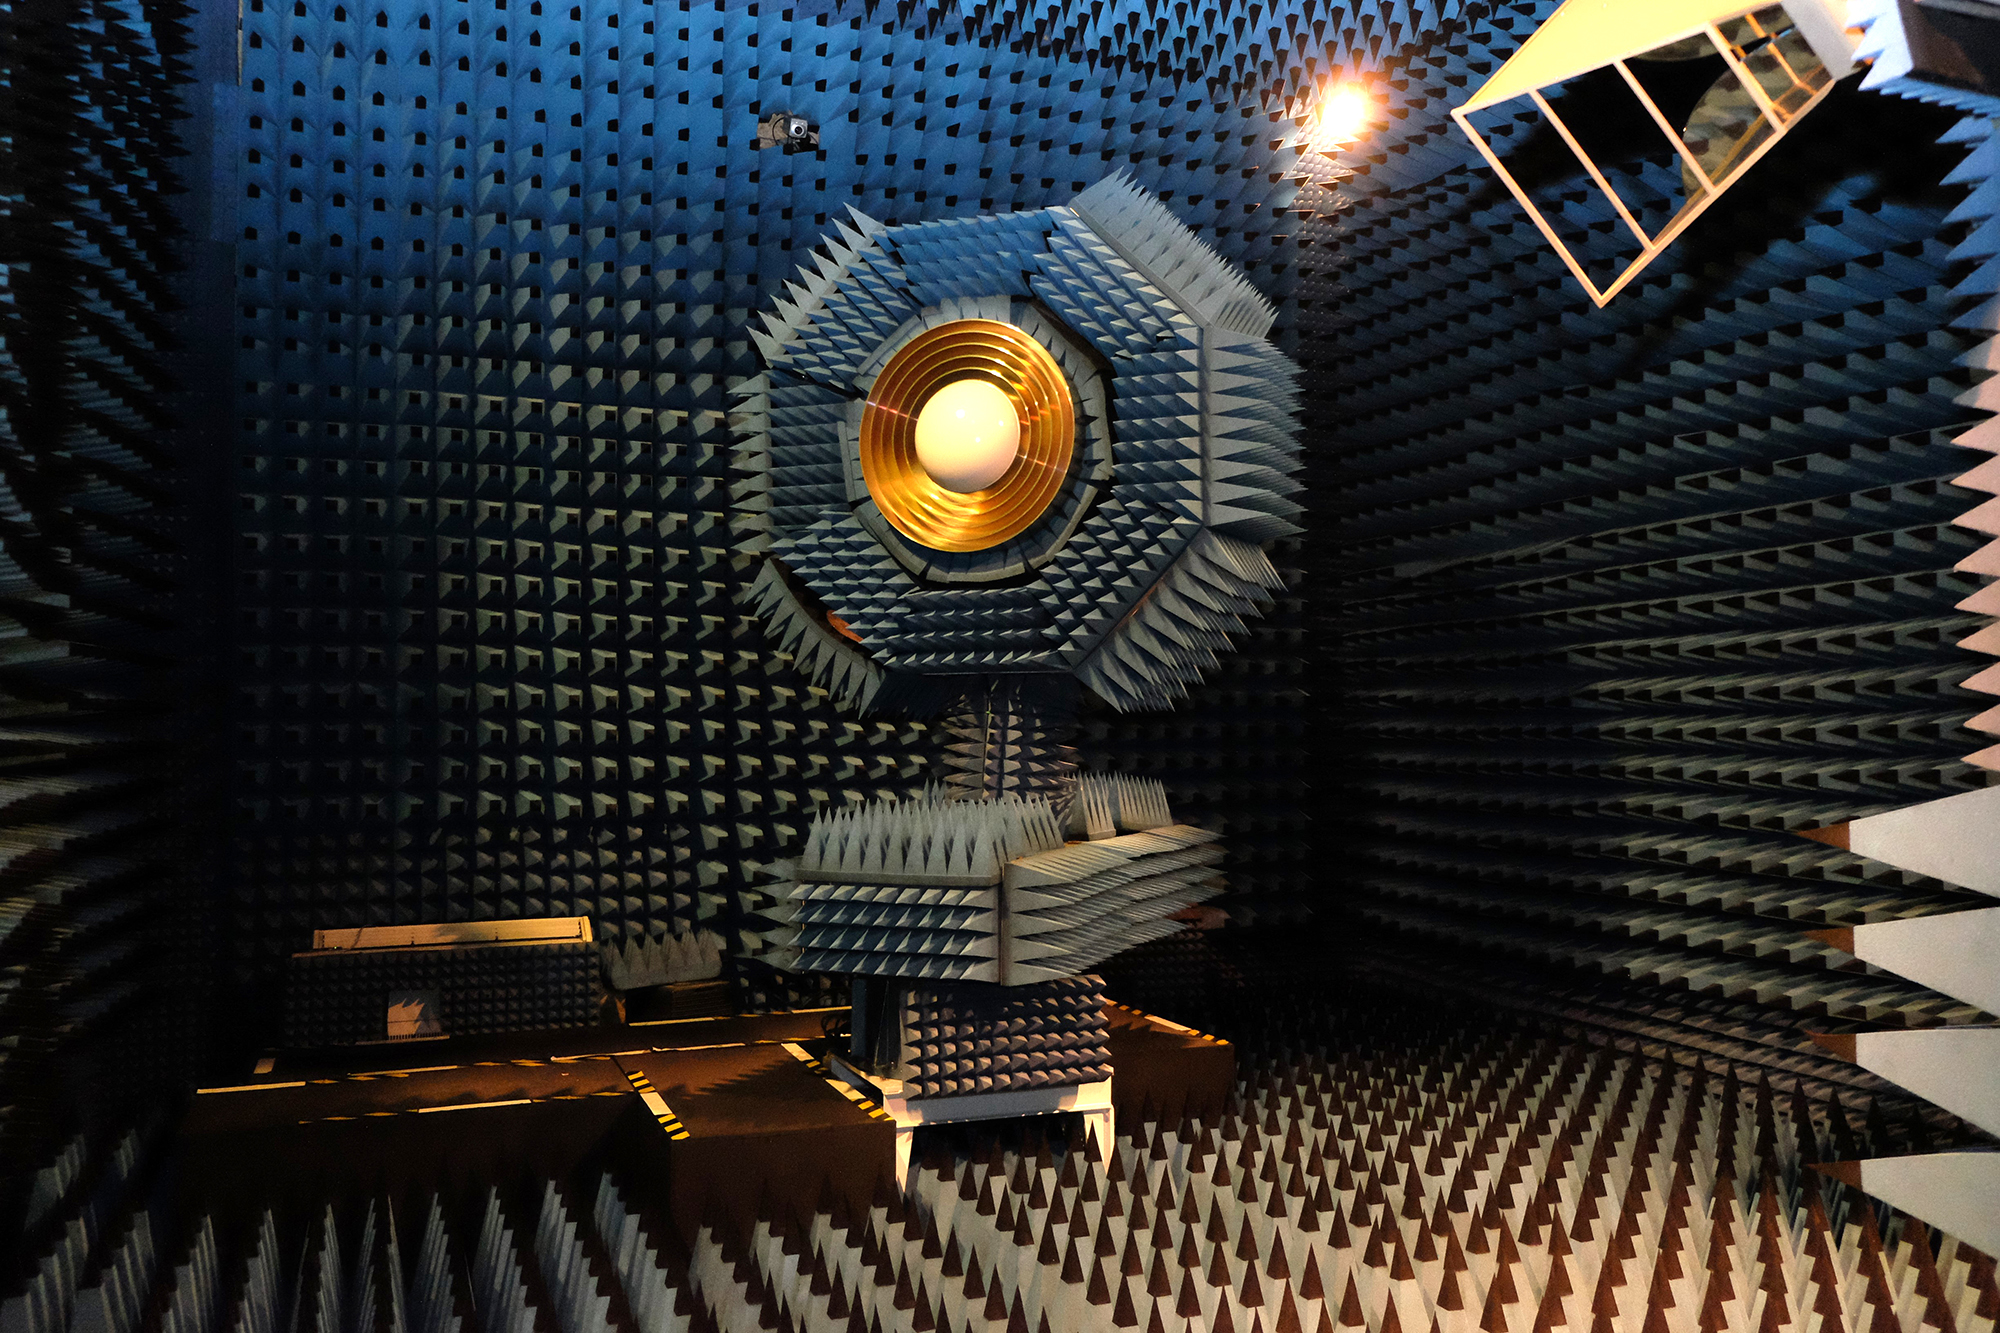 Receiver in the anechoic chamber.